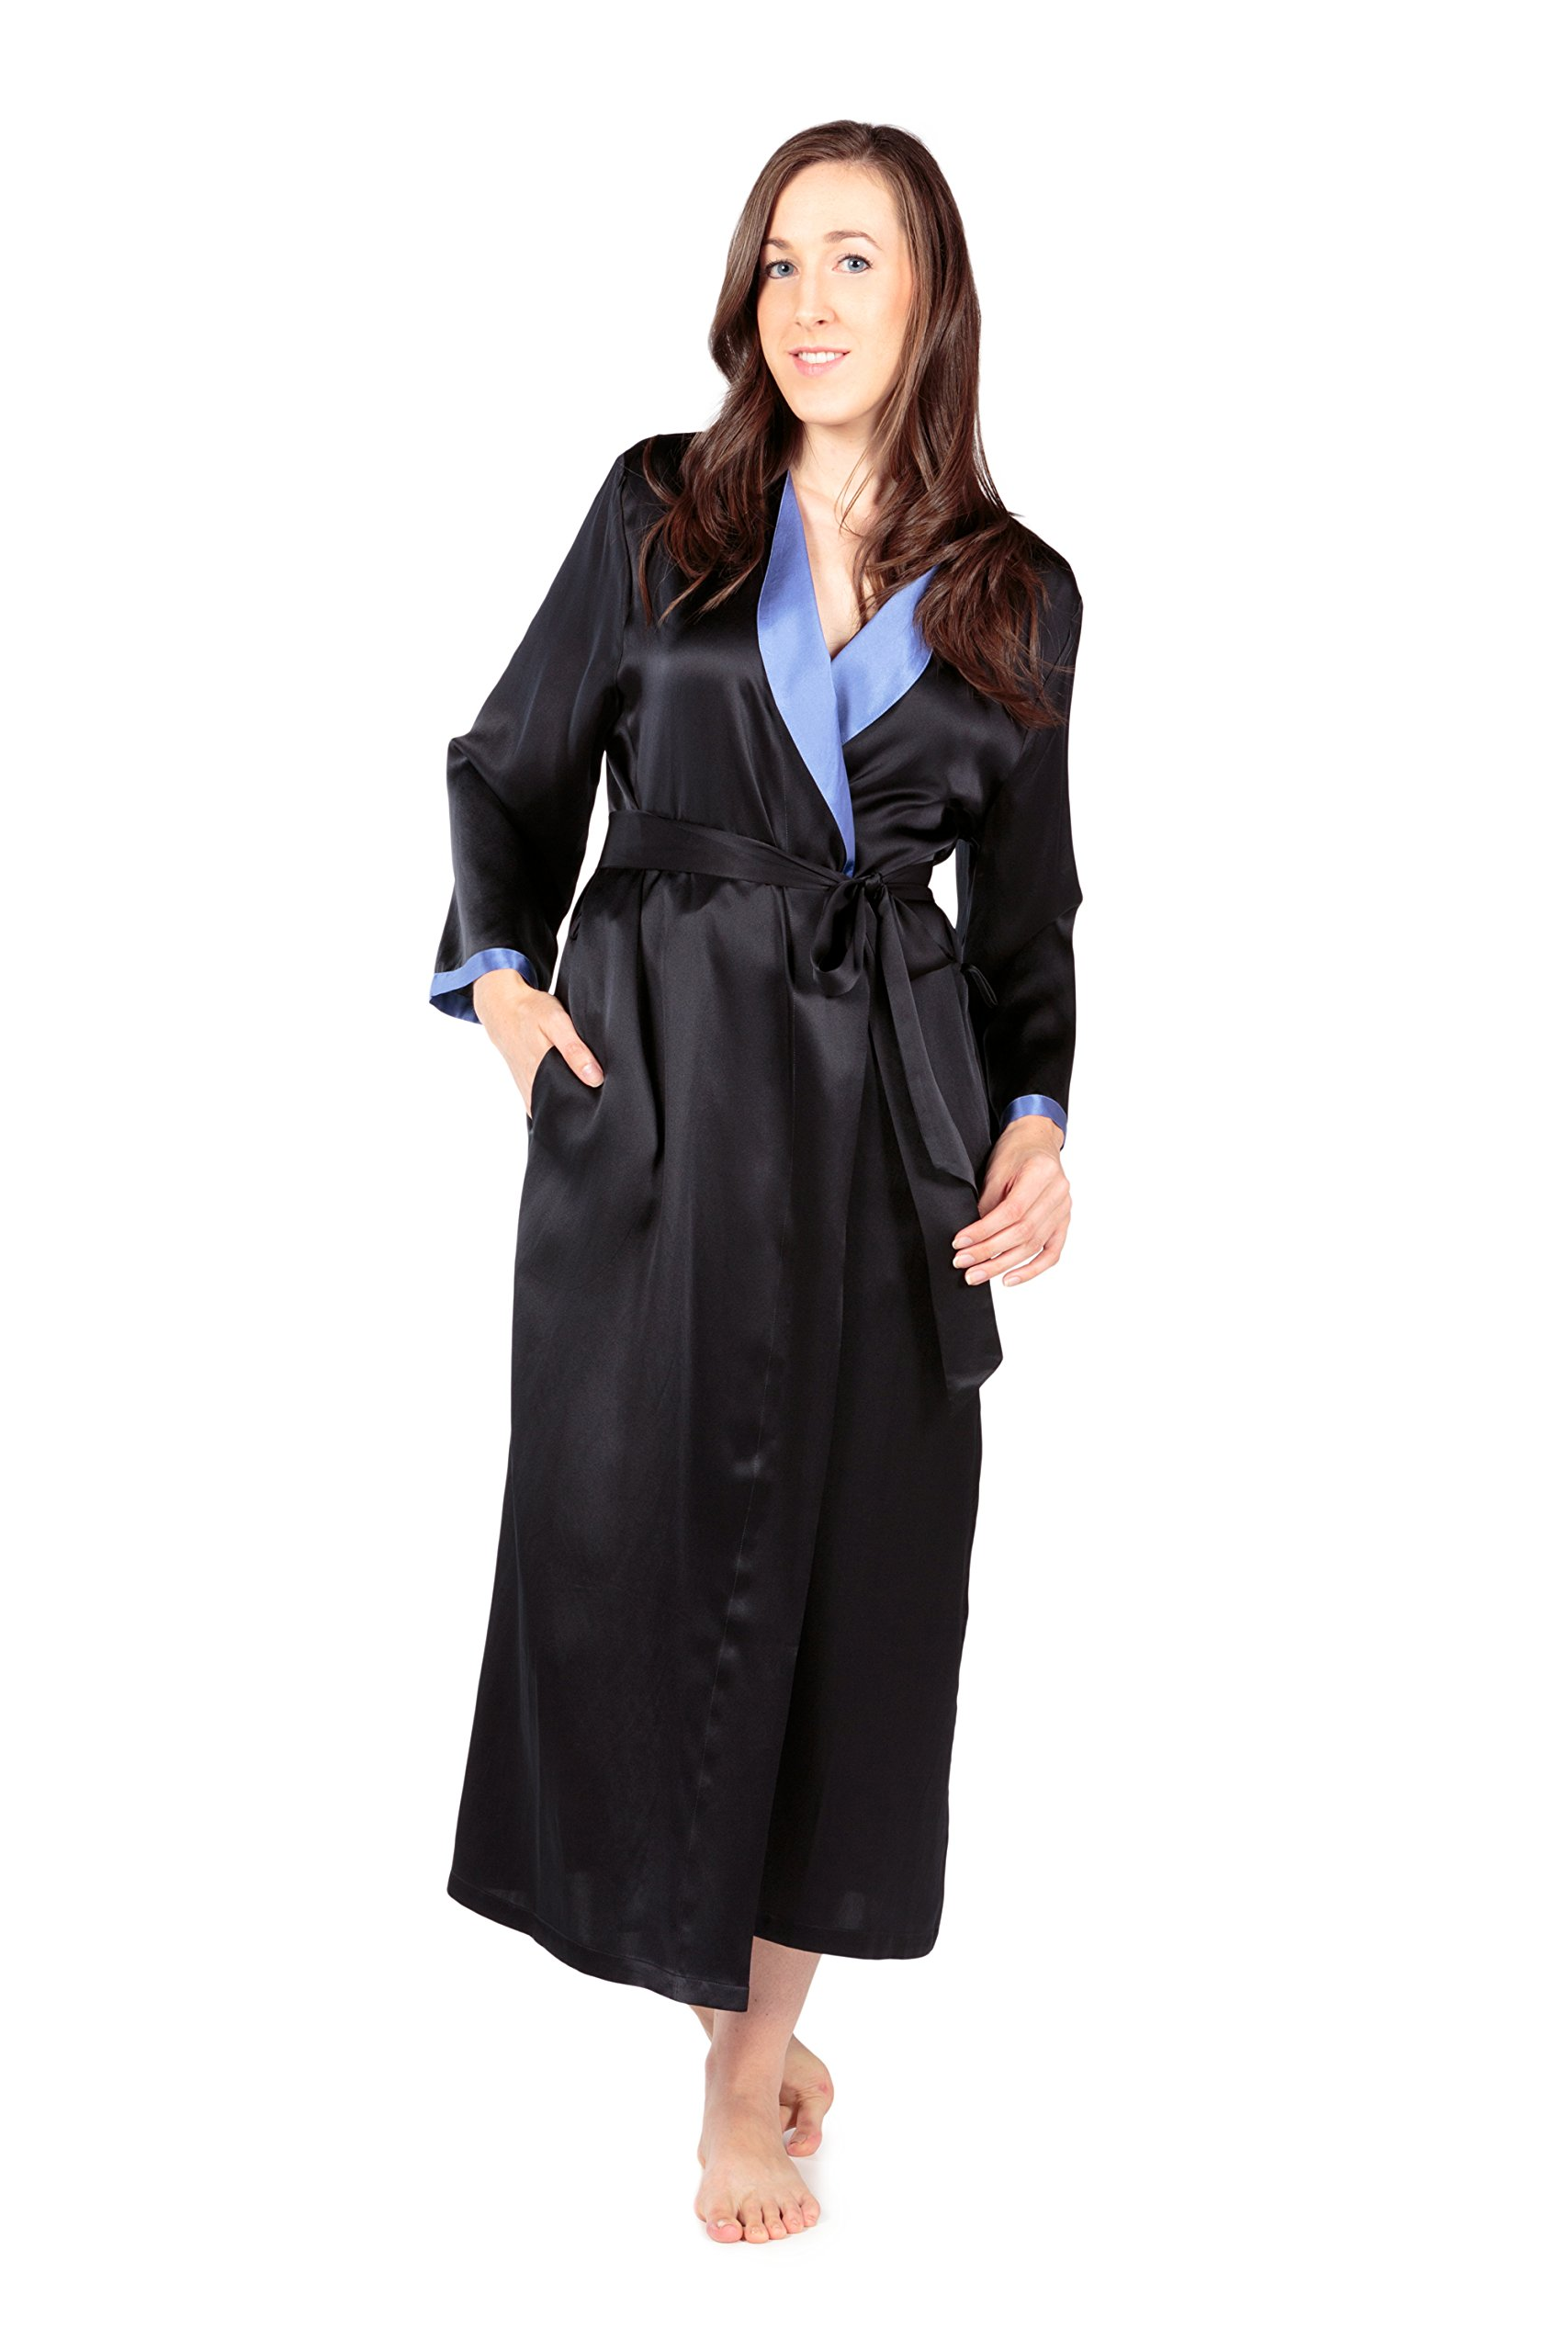 Women's Luxury Long Silk Bathrobe - Sleepwear Robe by TexereSilk (Beautibliss, Black, Large/X-Large) Popular Gifts for Women WS0102-BLK-LXL by TexereSilk (Image #4)